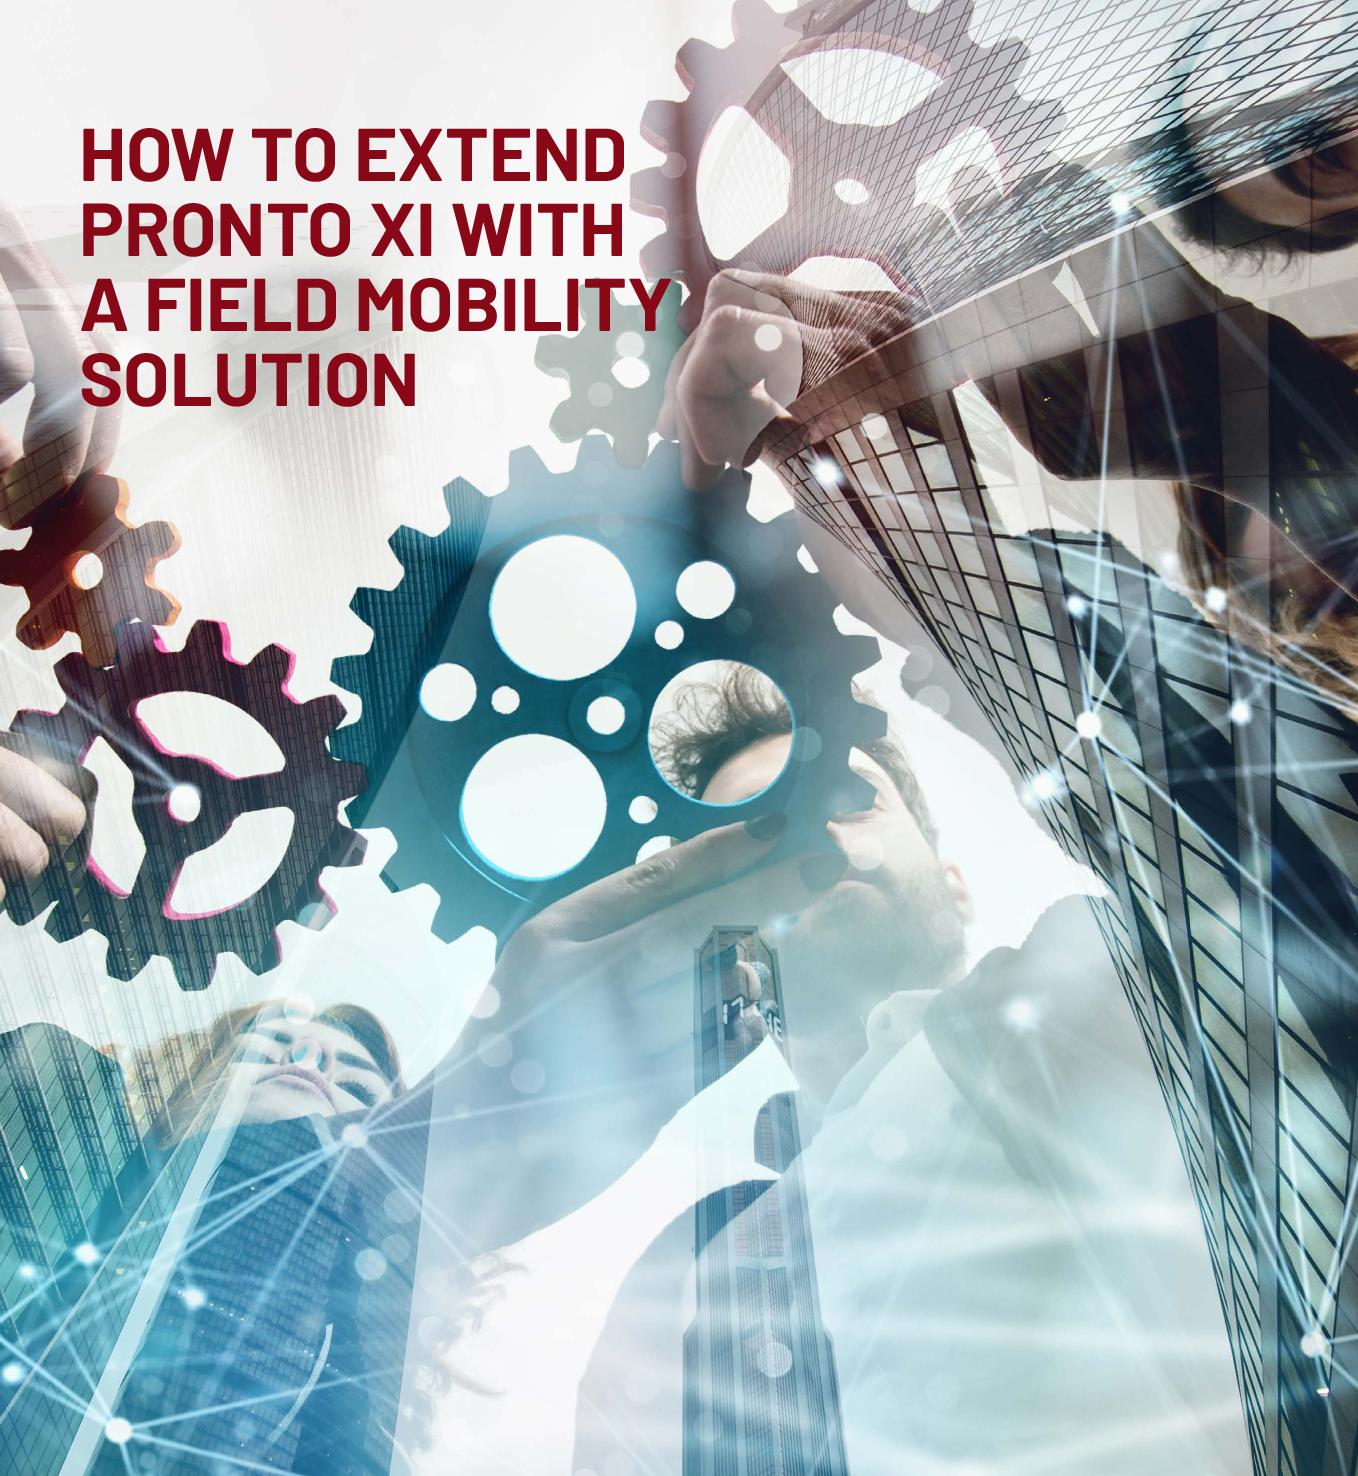 How to extend Pronto XI with a field mobility solution